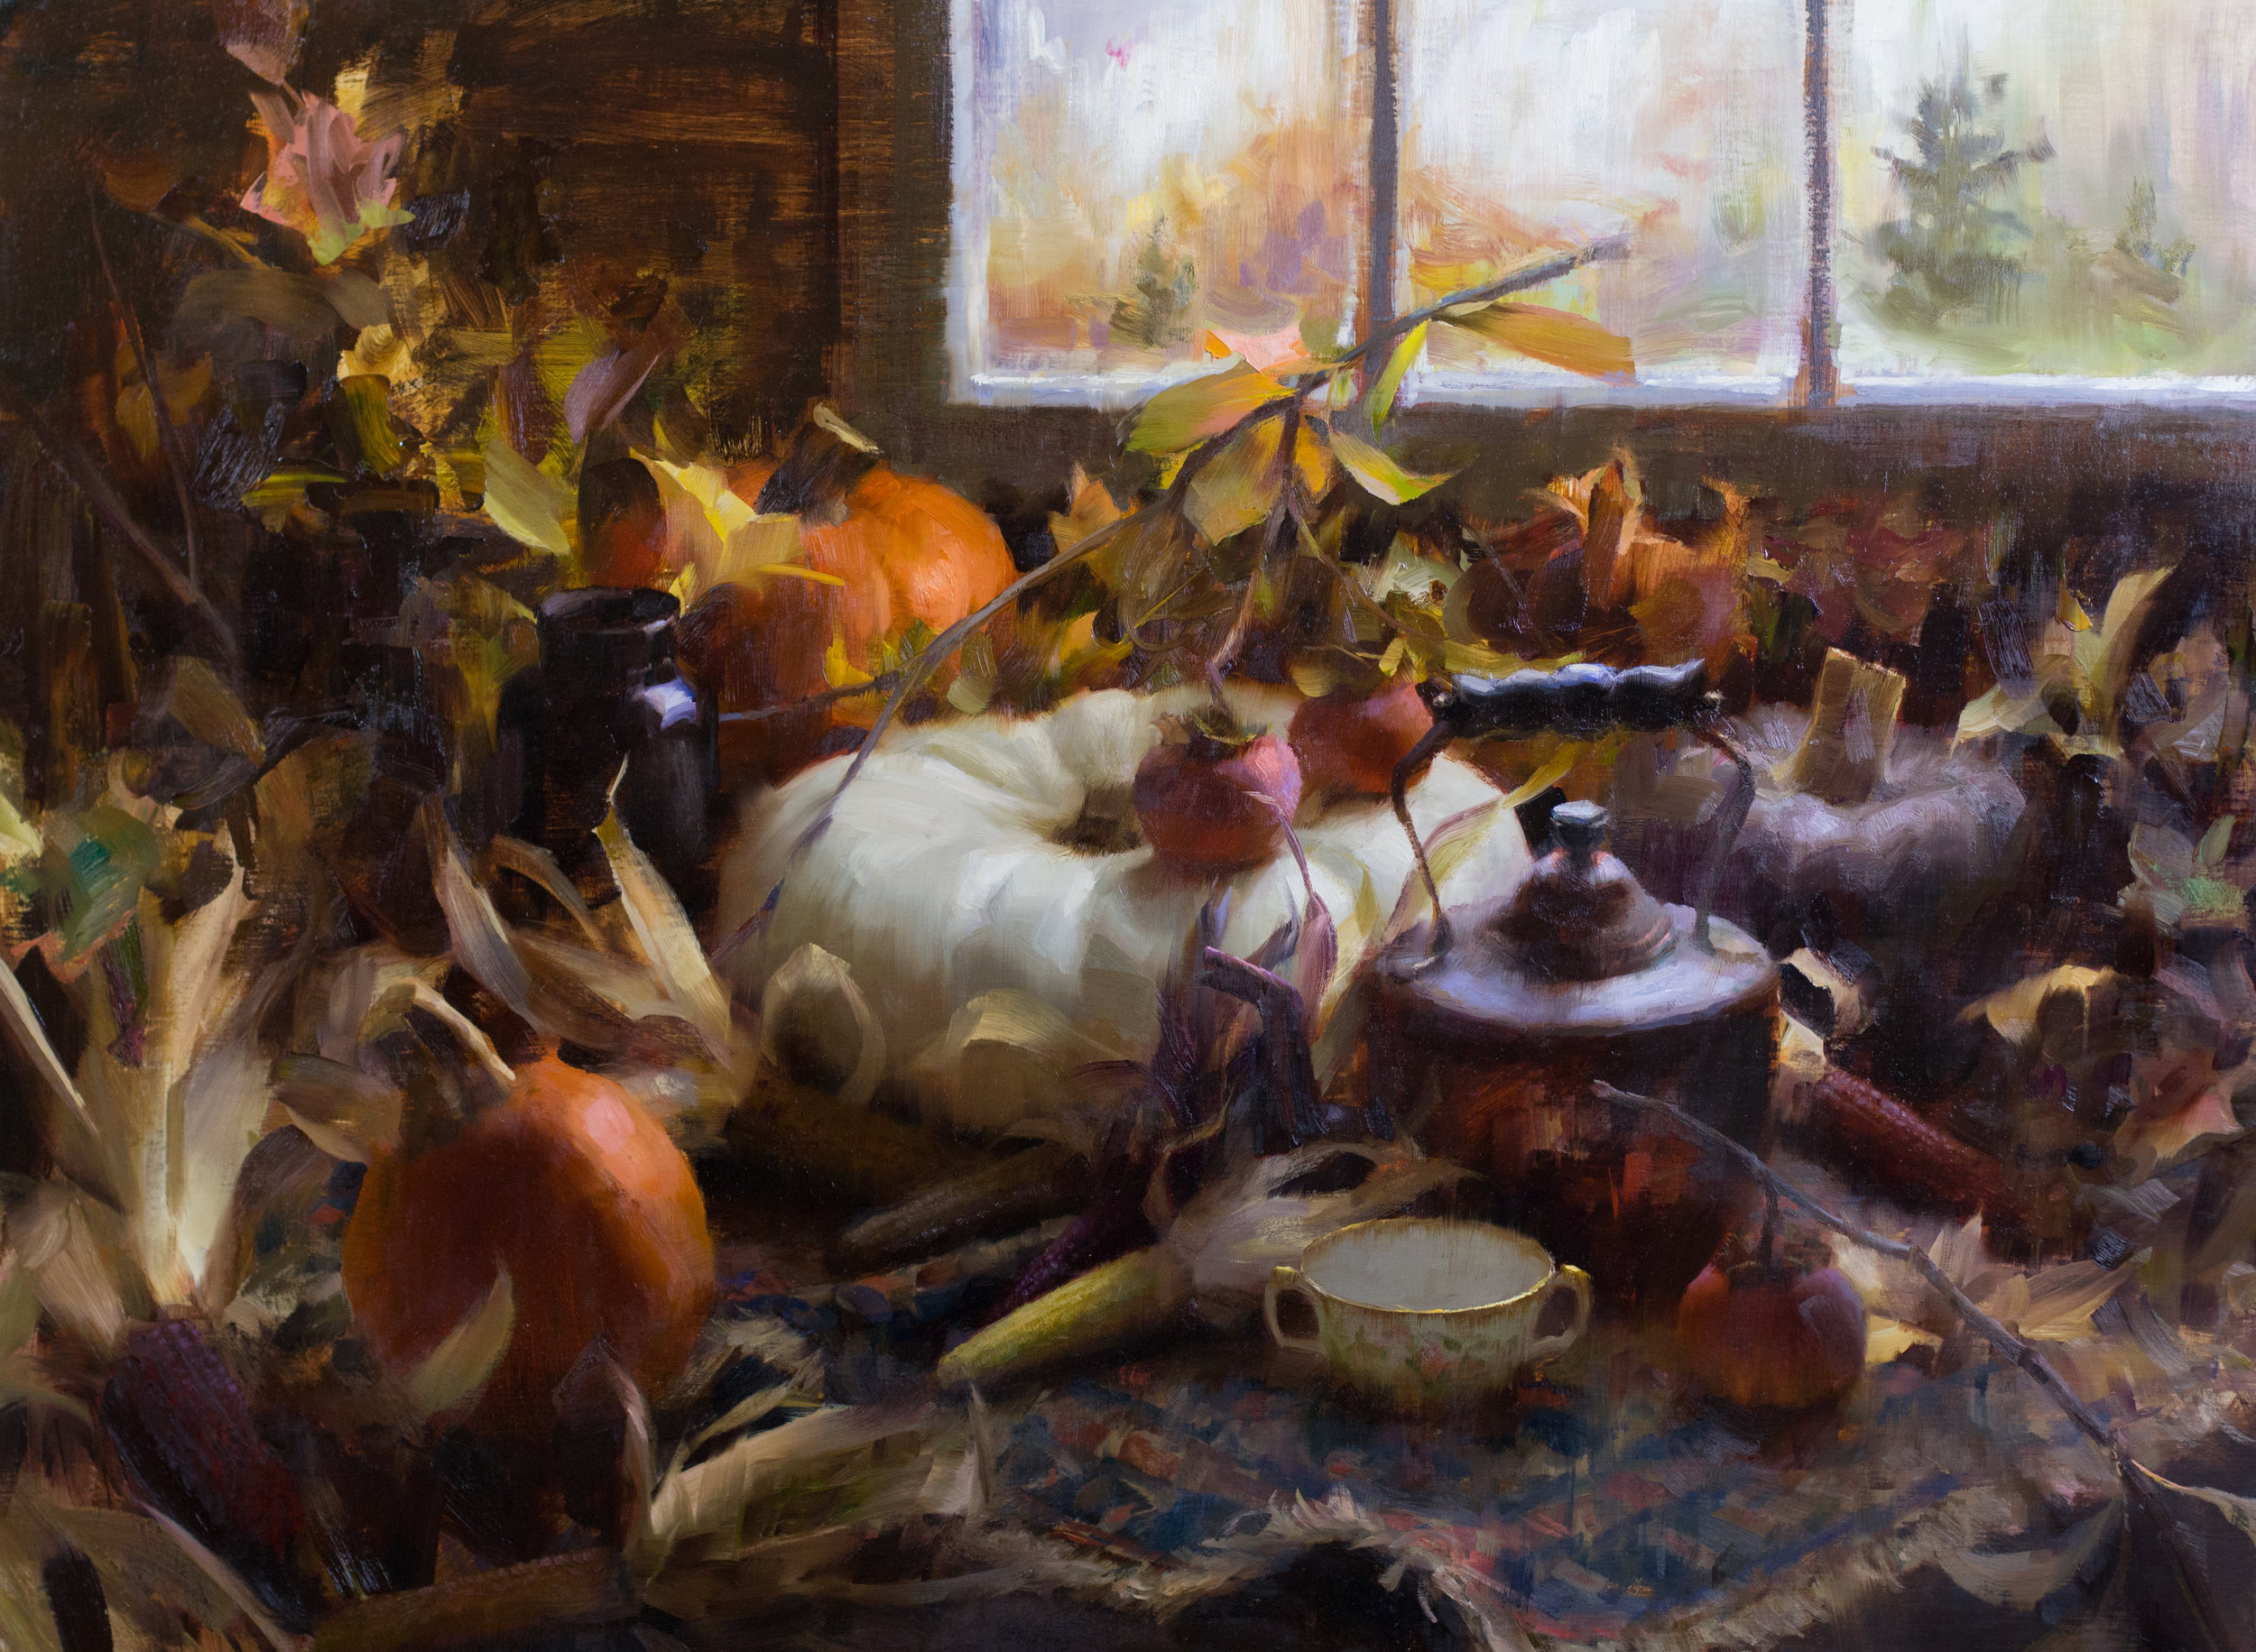 Autumn Still-life by the Window, 30 x 40 inches, oil on linen